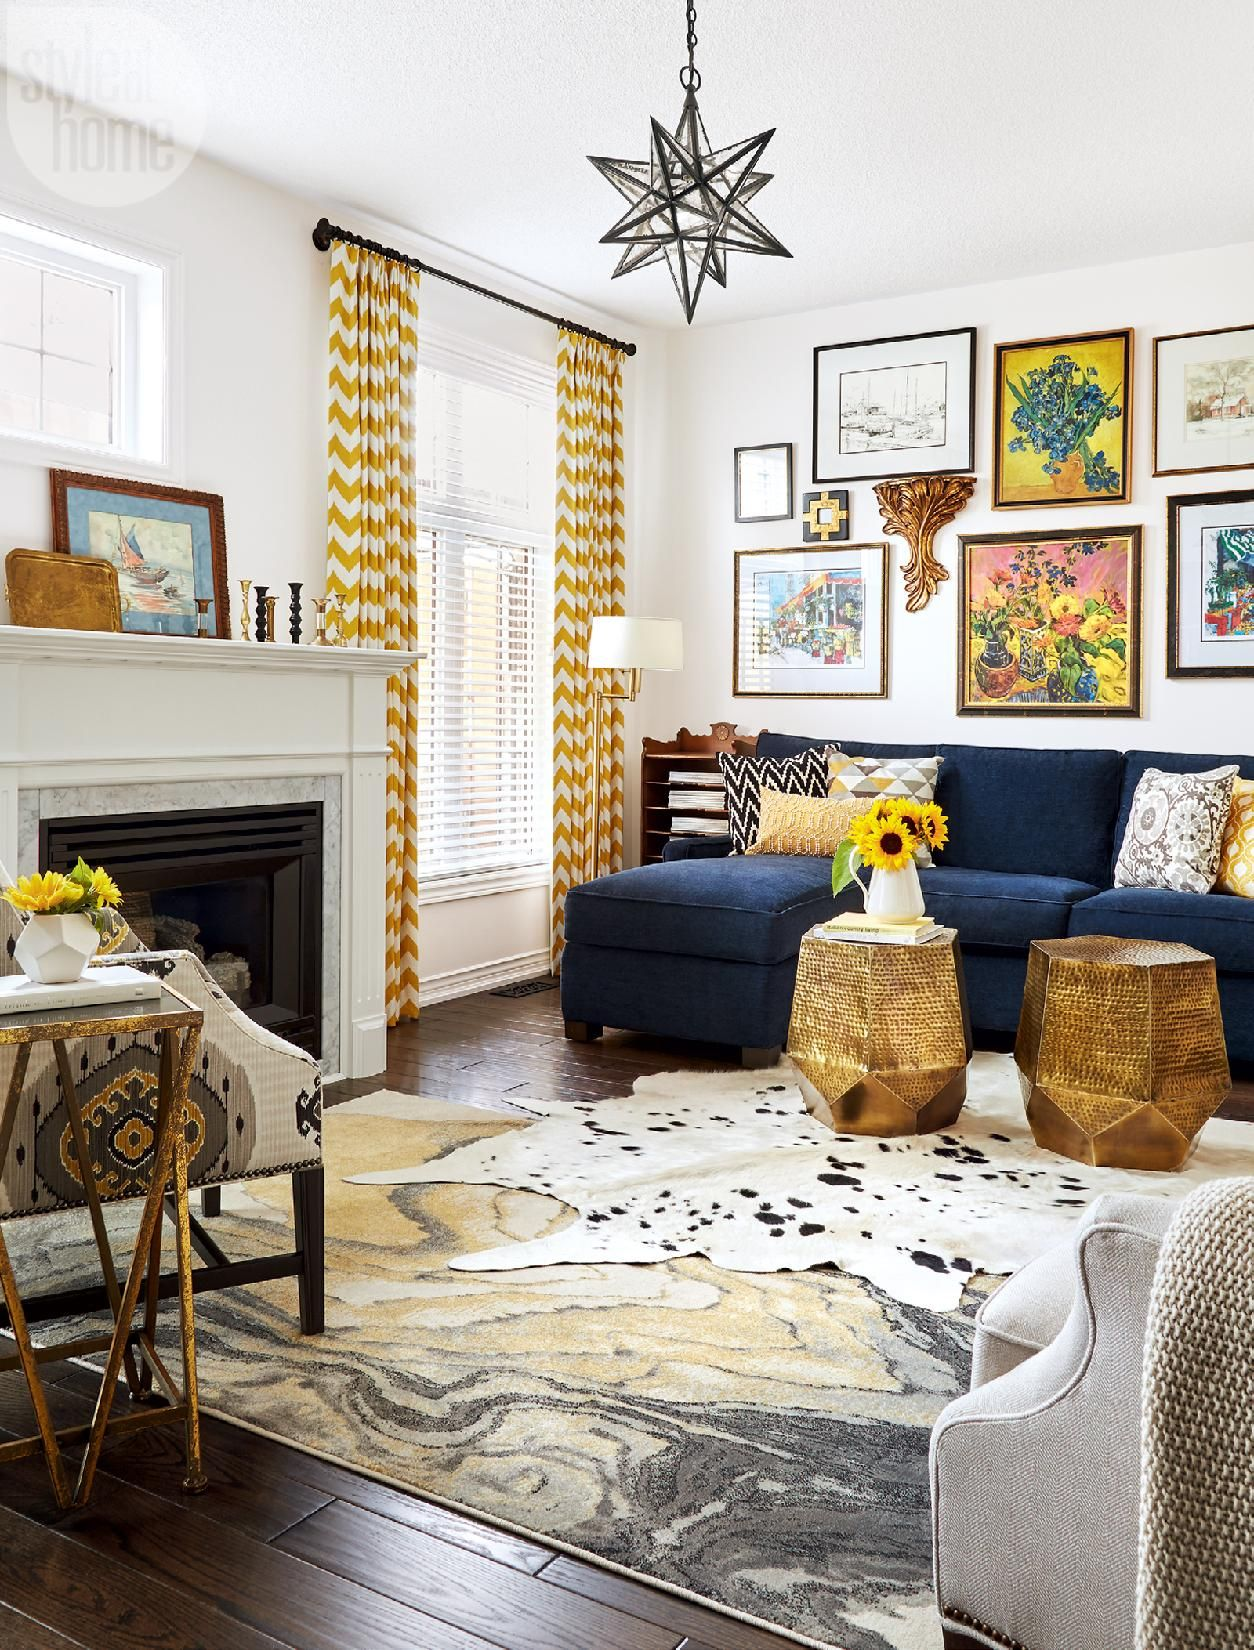 Townhouse Living Room Design: House Tour: Bold And Bright Townhouse